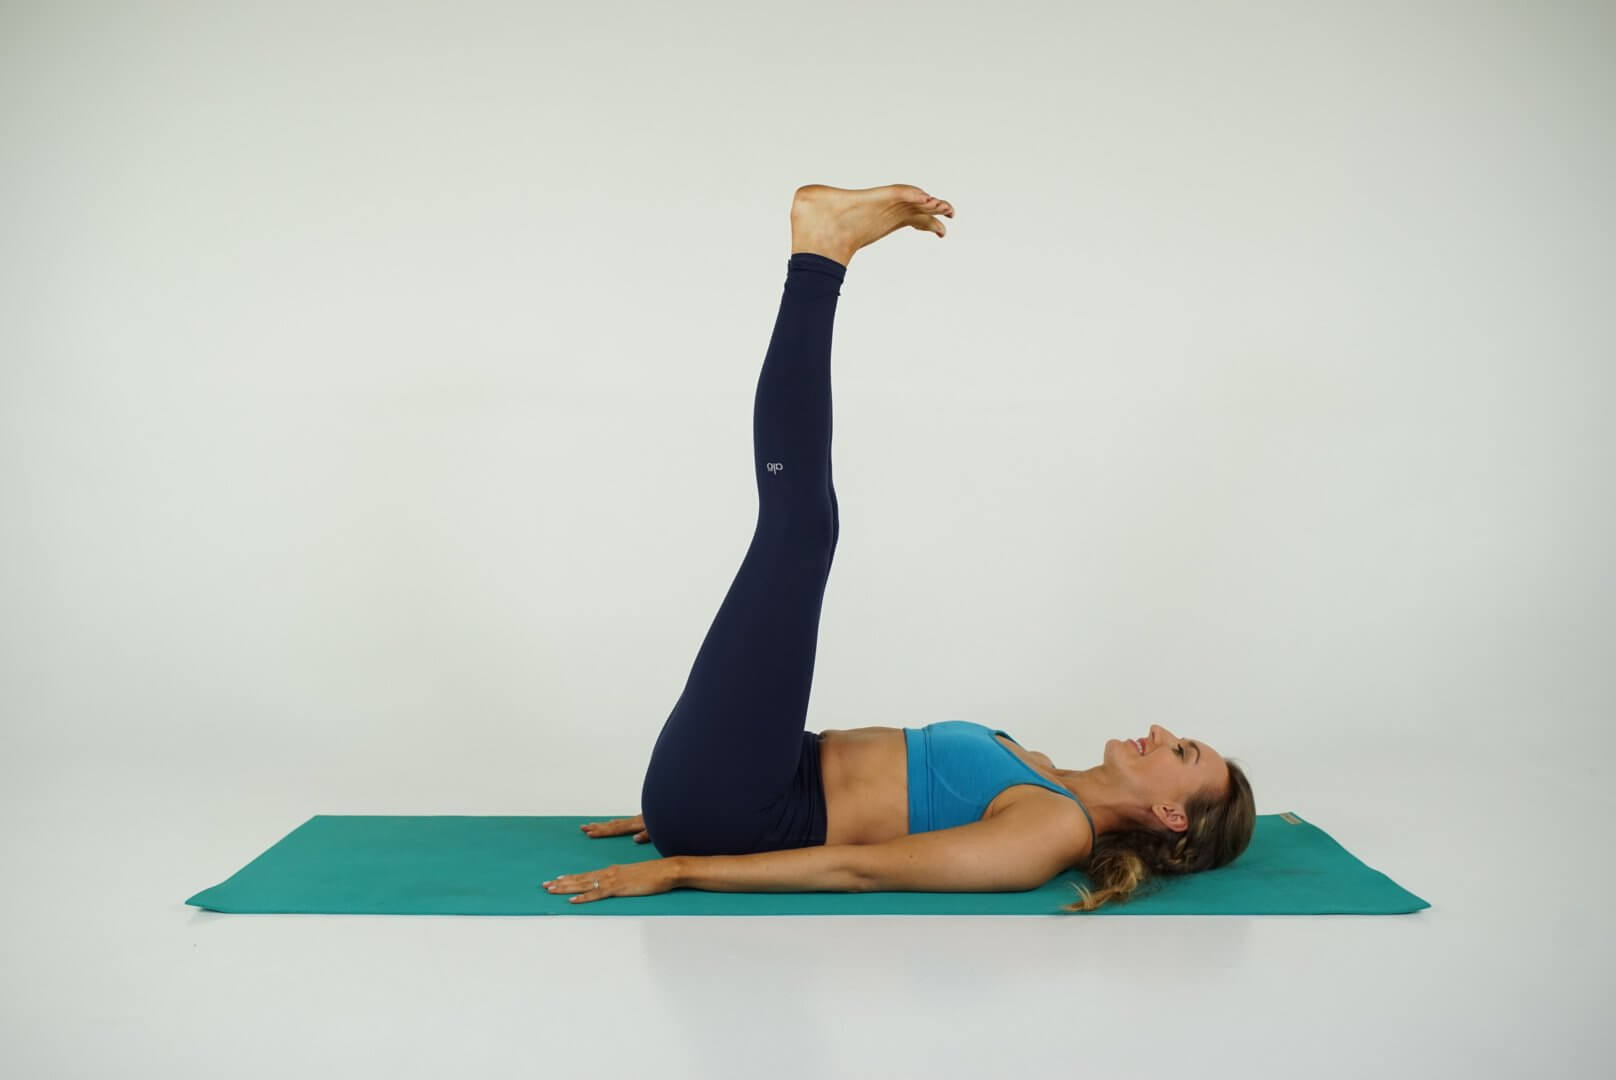 Viparita Karani legs up the wall pose